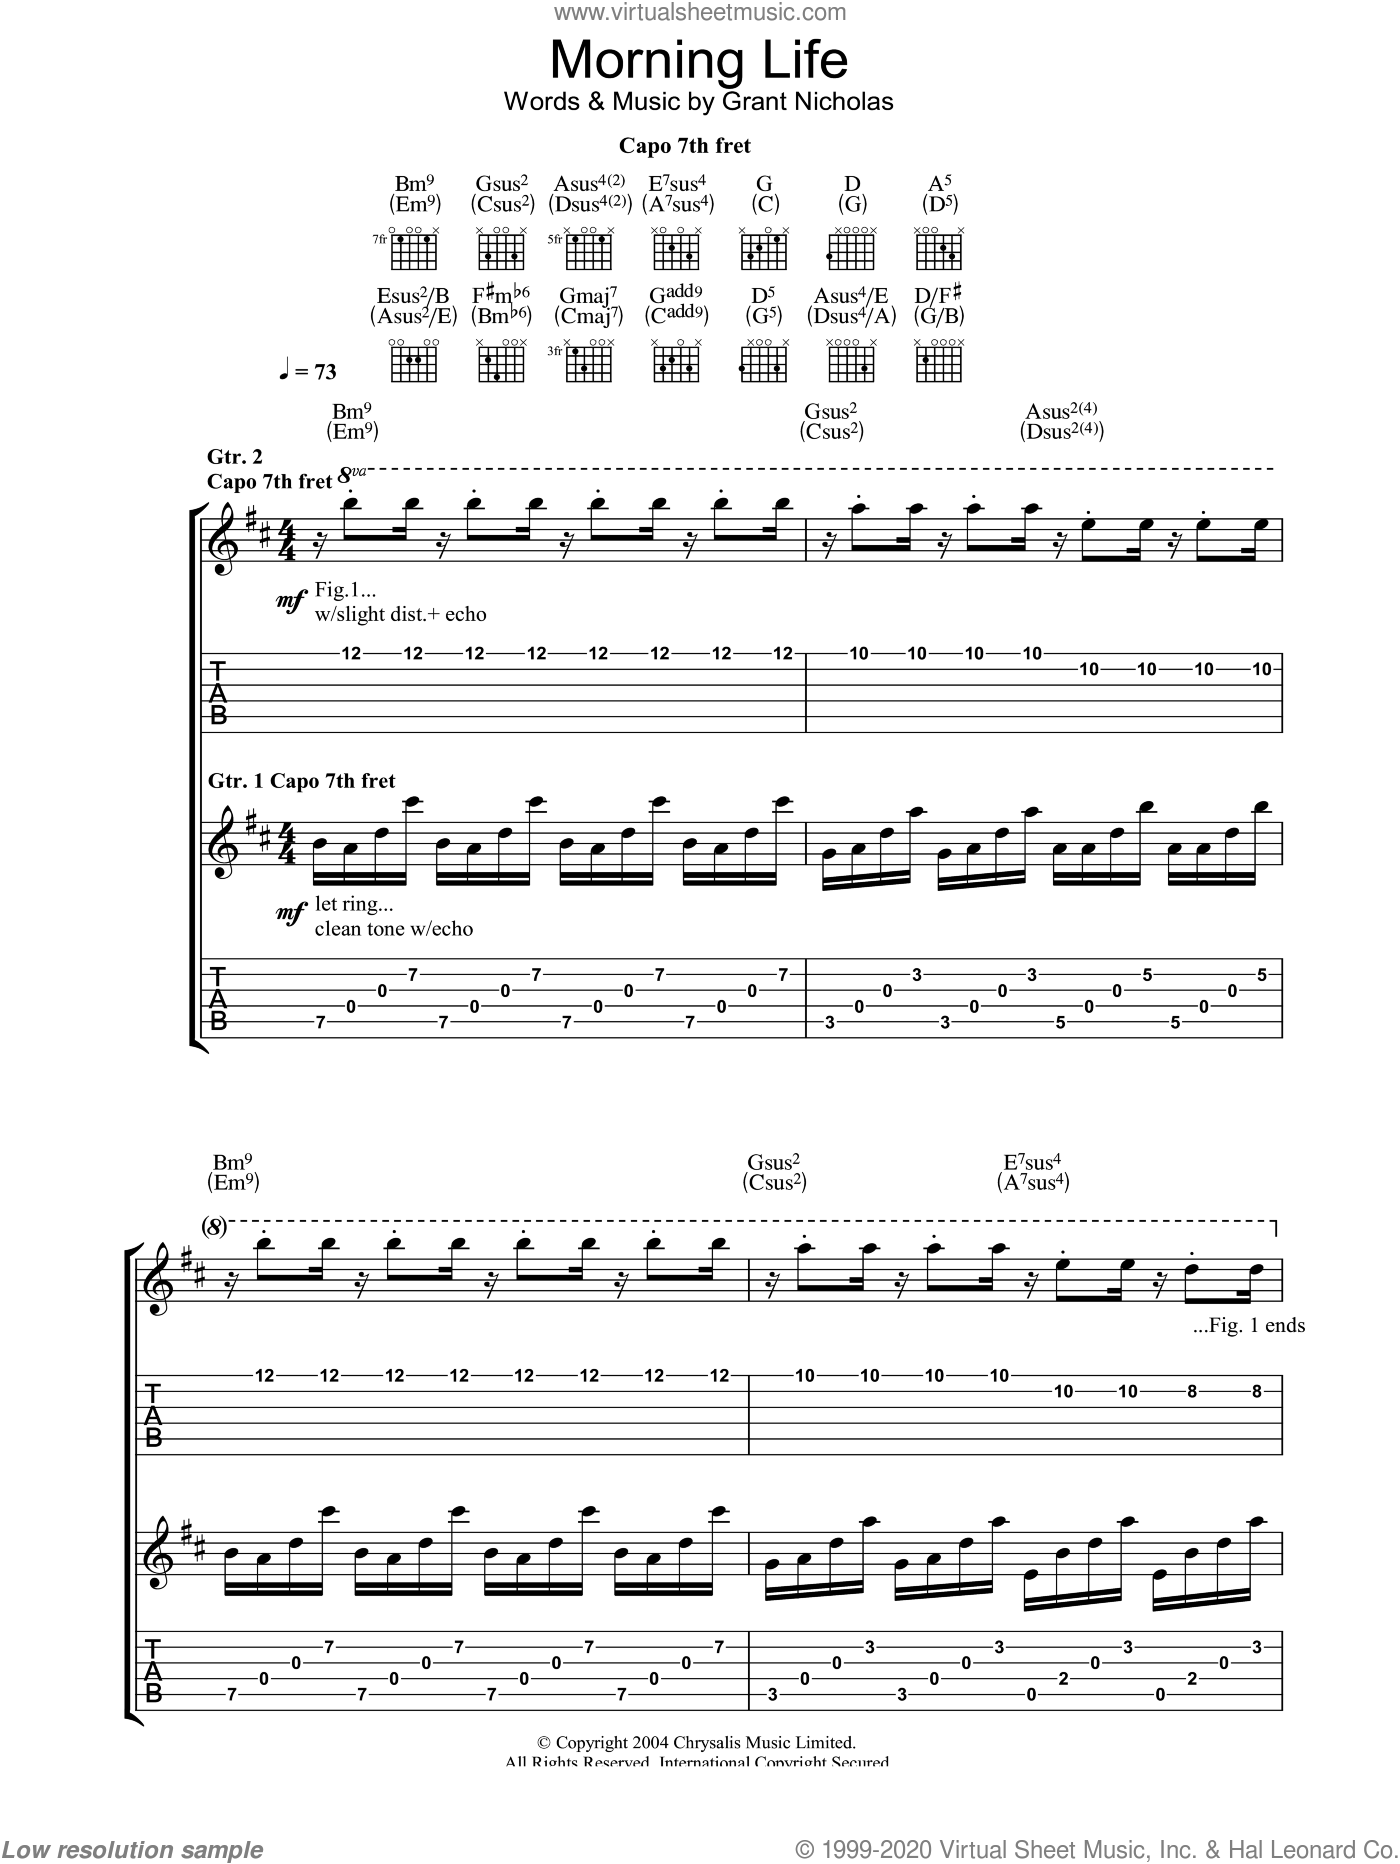 Morning Life sheet music for guitar (tablature) by Grant Nicholas